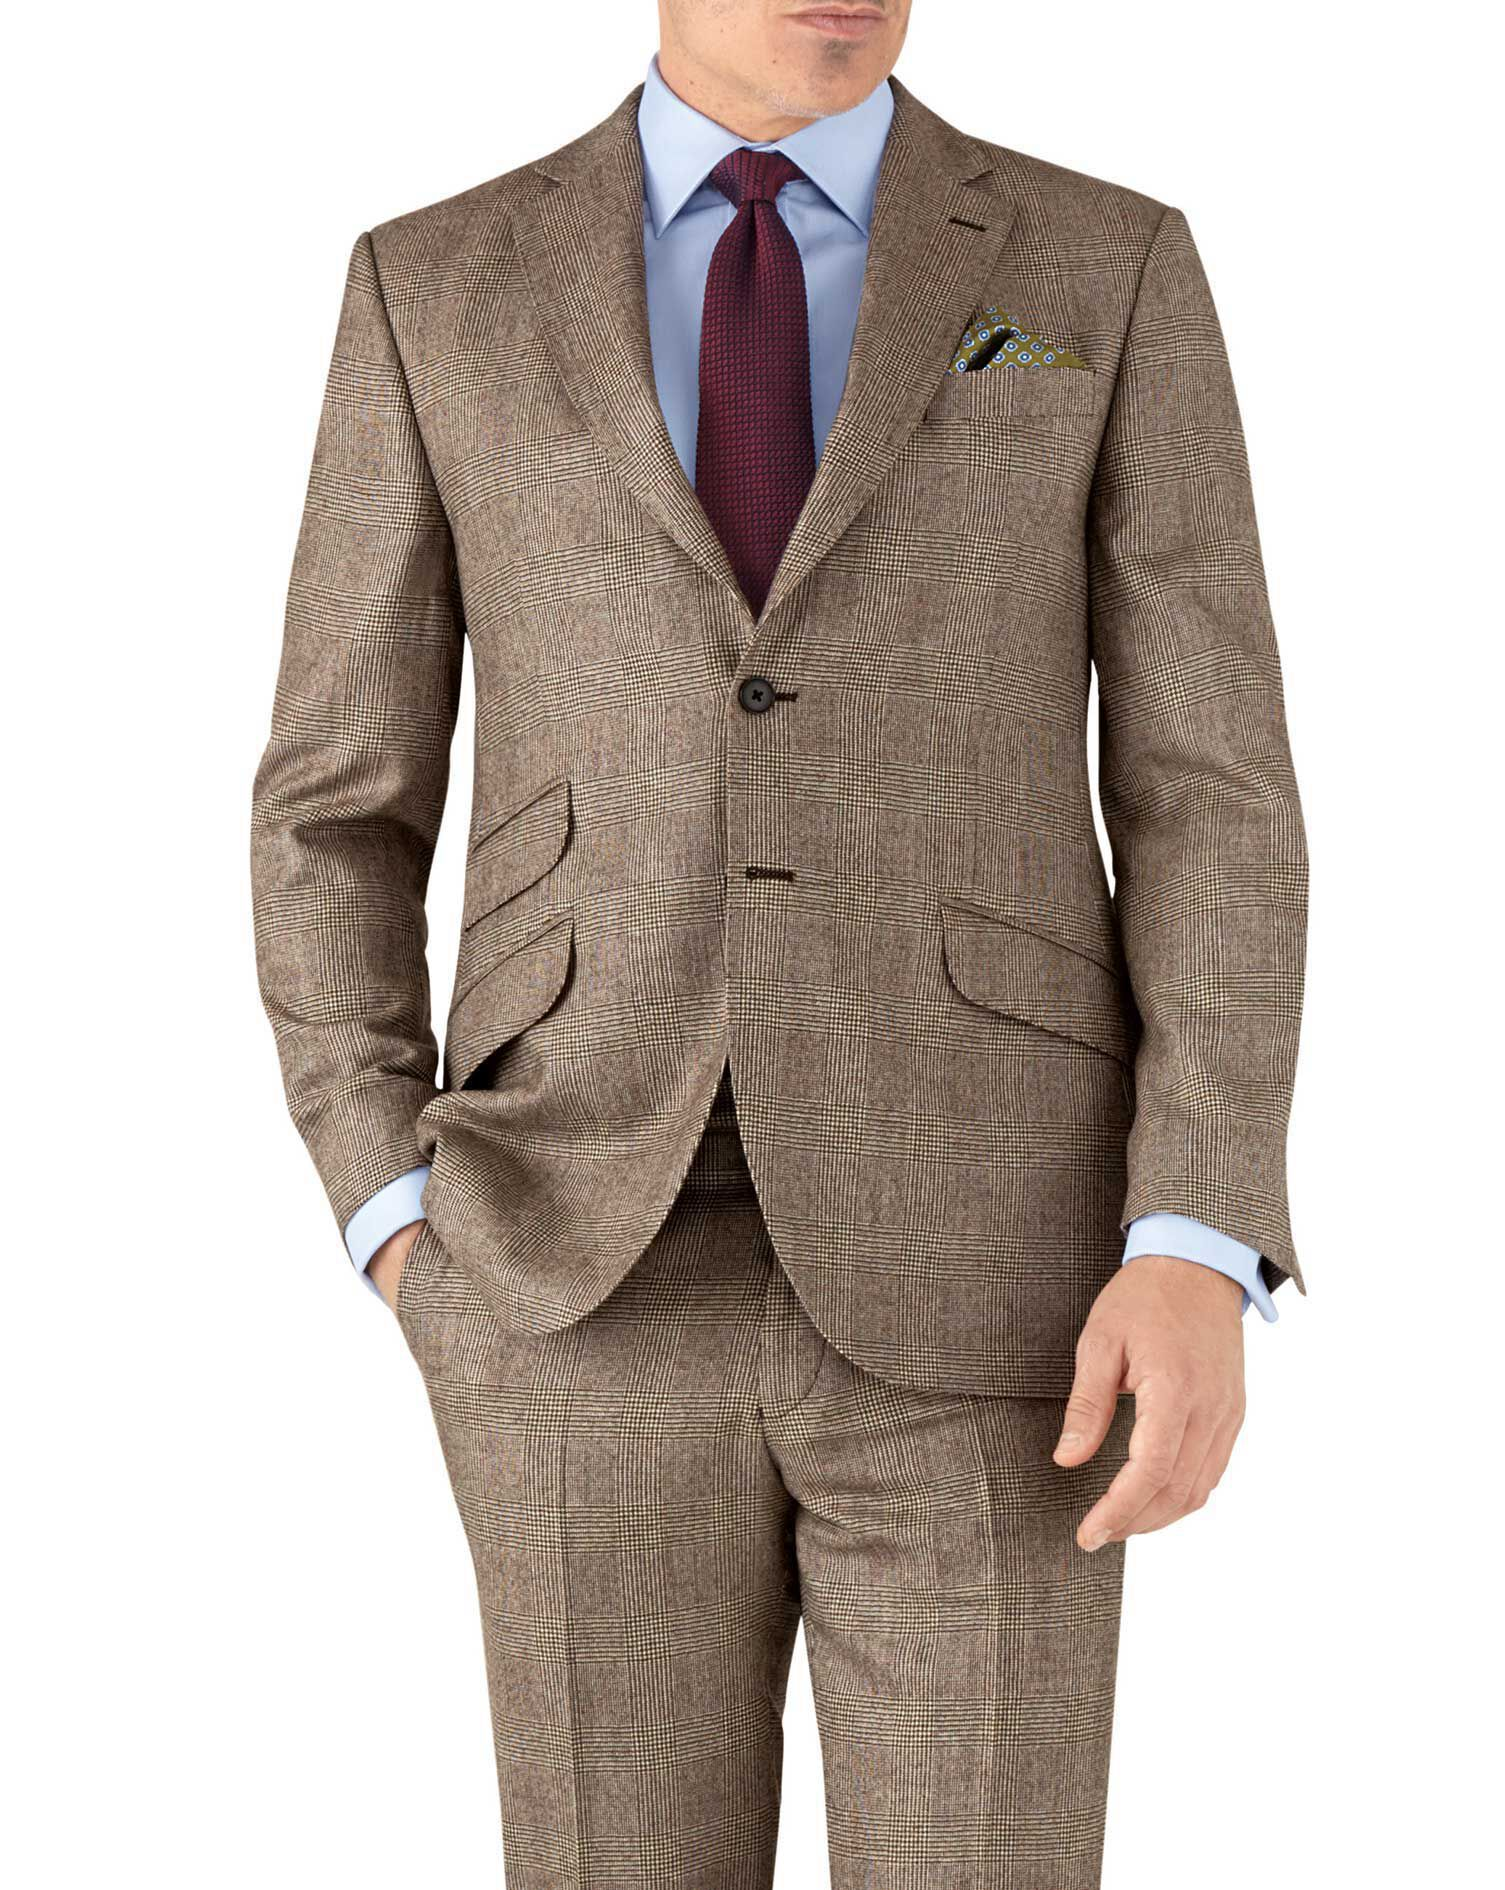 Tan Check Classic Fit British Serge Luxury Suit Wool Jacket Size 46 Long by Charles Tyrwhitt